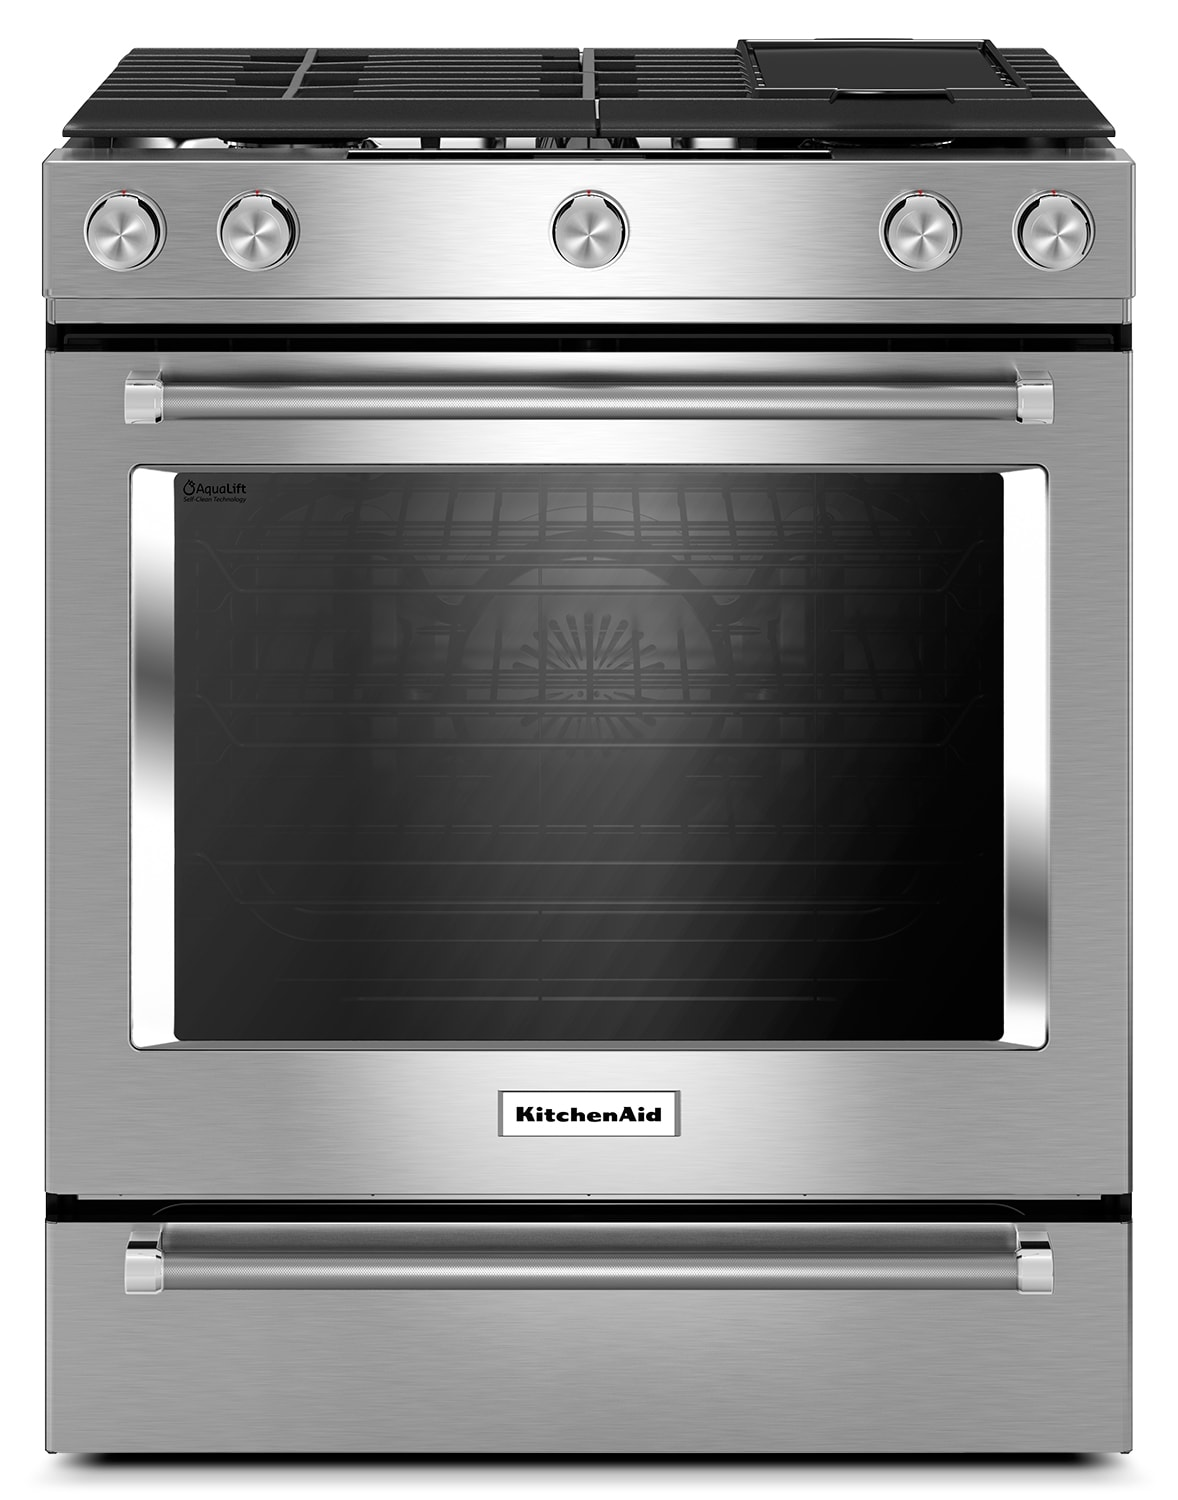 Kitchenaid stainless steel slide in dual fuel convection range 7 1 cu ft yksdb900ess leon 39 s - Kitchenaid inch dual fuel range ...